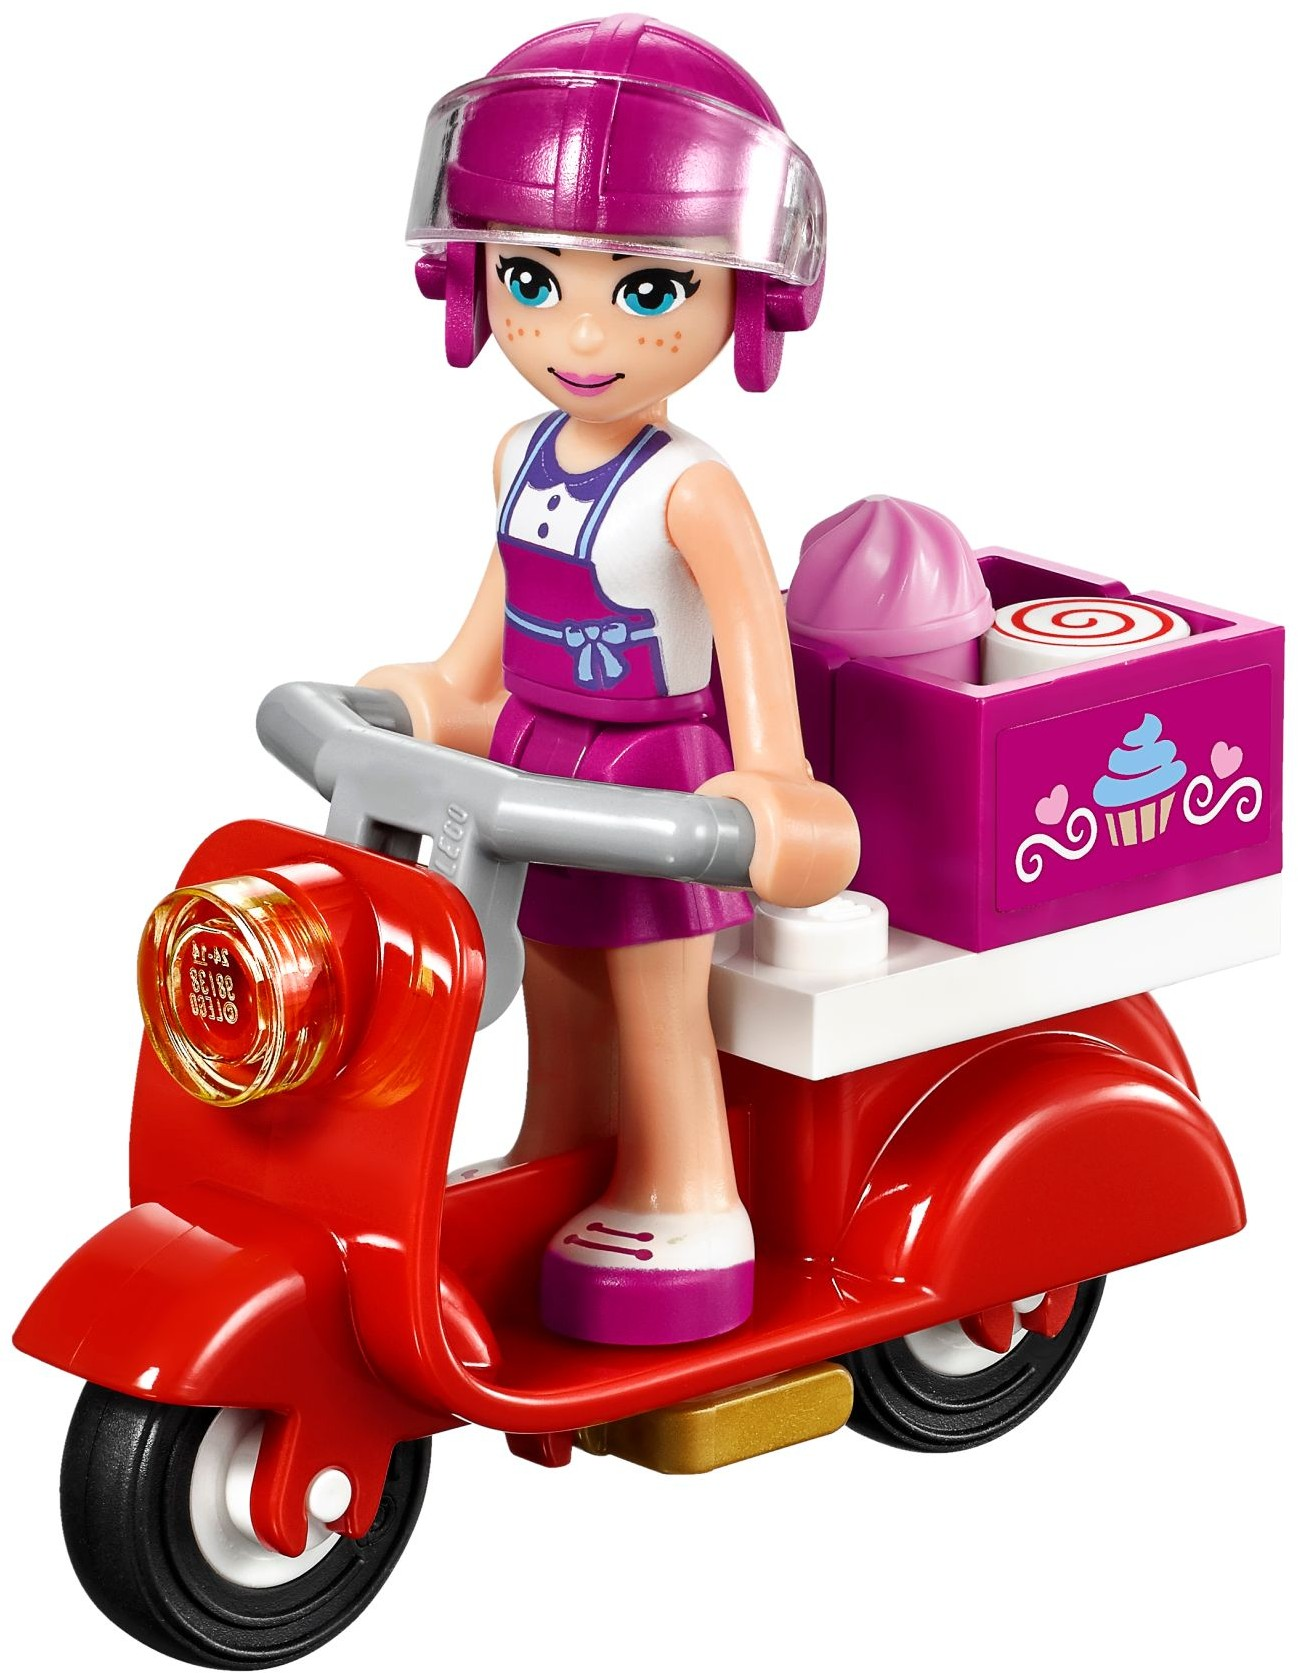 File:Heartlake-Cupcake-Cafe-Naomi-on-scooter-delivery-41119-204x271.jpg